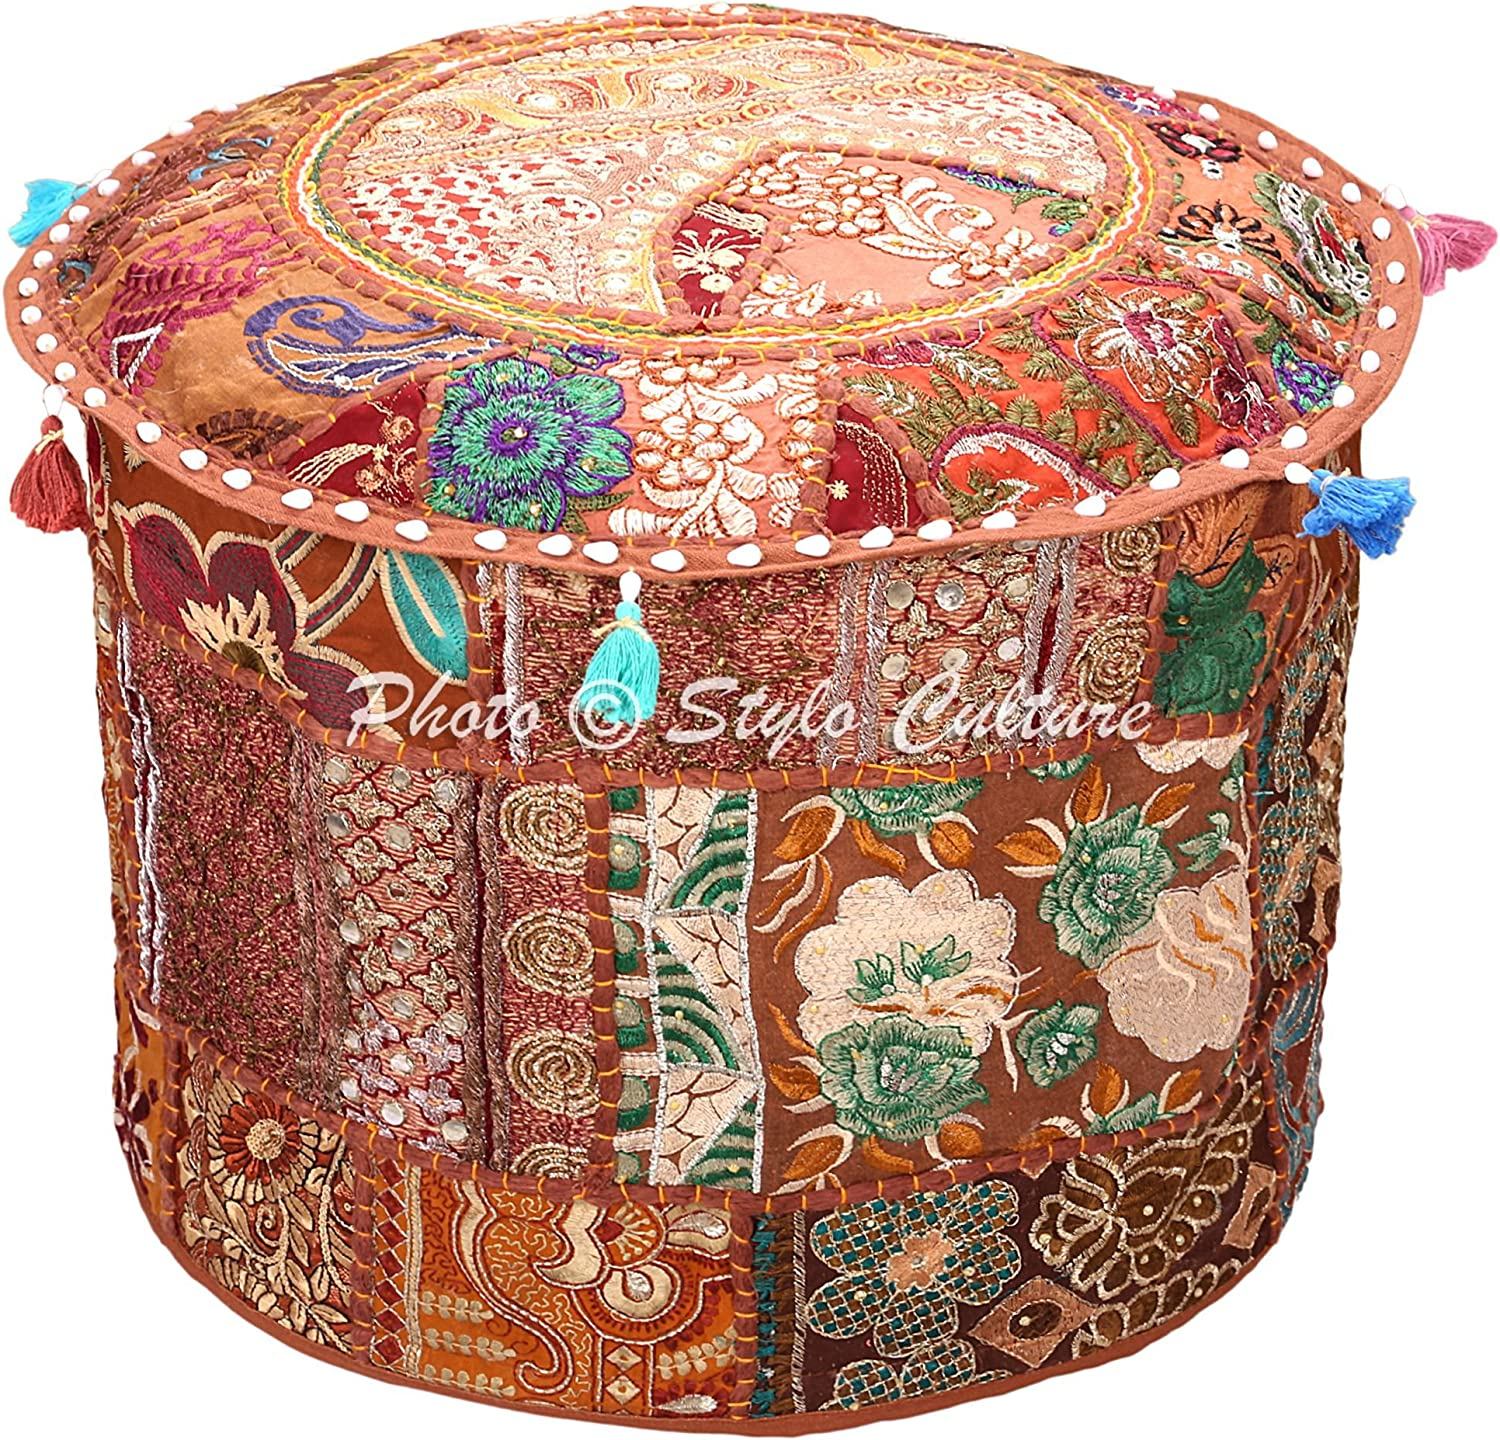 Stylo Culture Mail order Ethnic Surprise price Patchwork Ottoman Embroide Round Pouf Cover